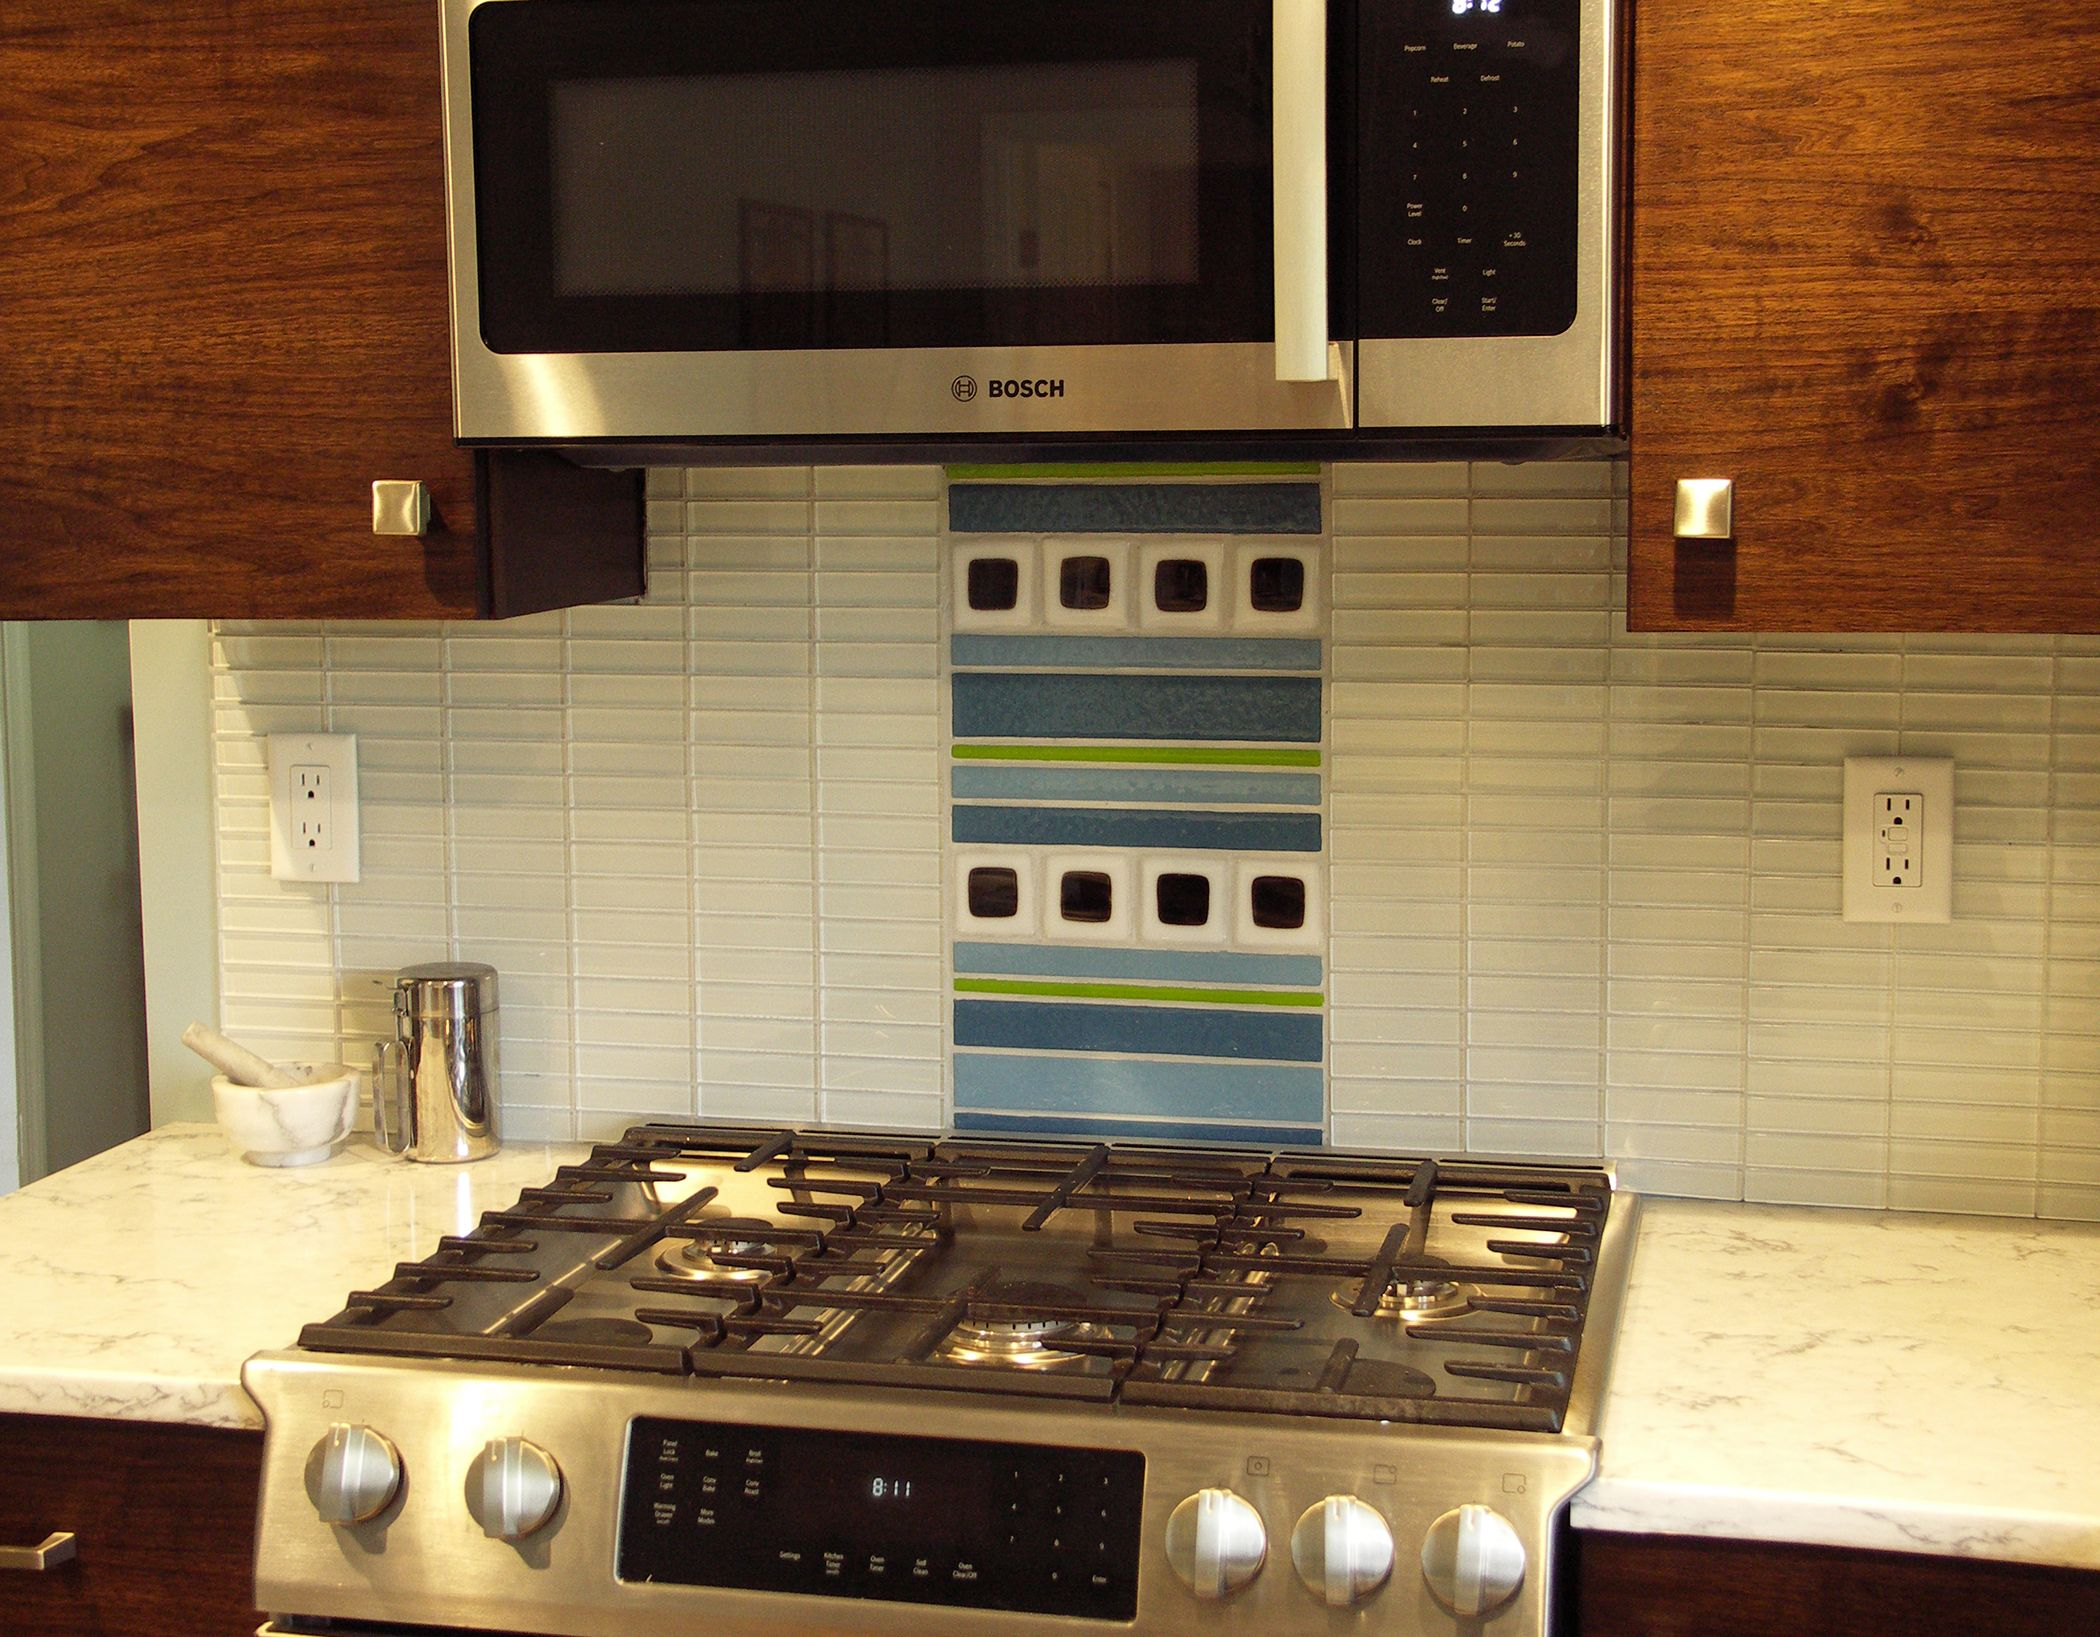 Kitchen remodel using white glass 1x4 subway tile backsplash with kitchen remodel using white glass 1x4 subway tile backsplash with a decorative center tile over stove doublecrazyfo Gallery